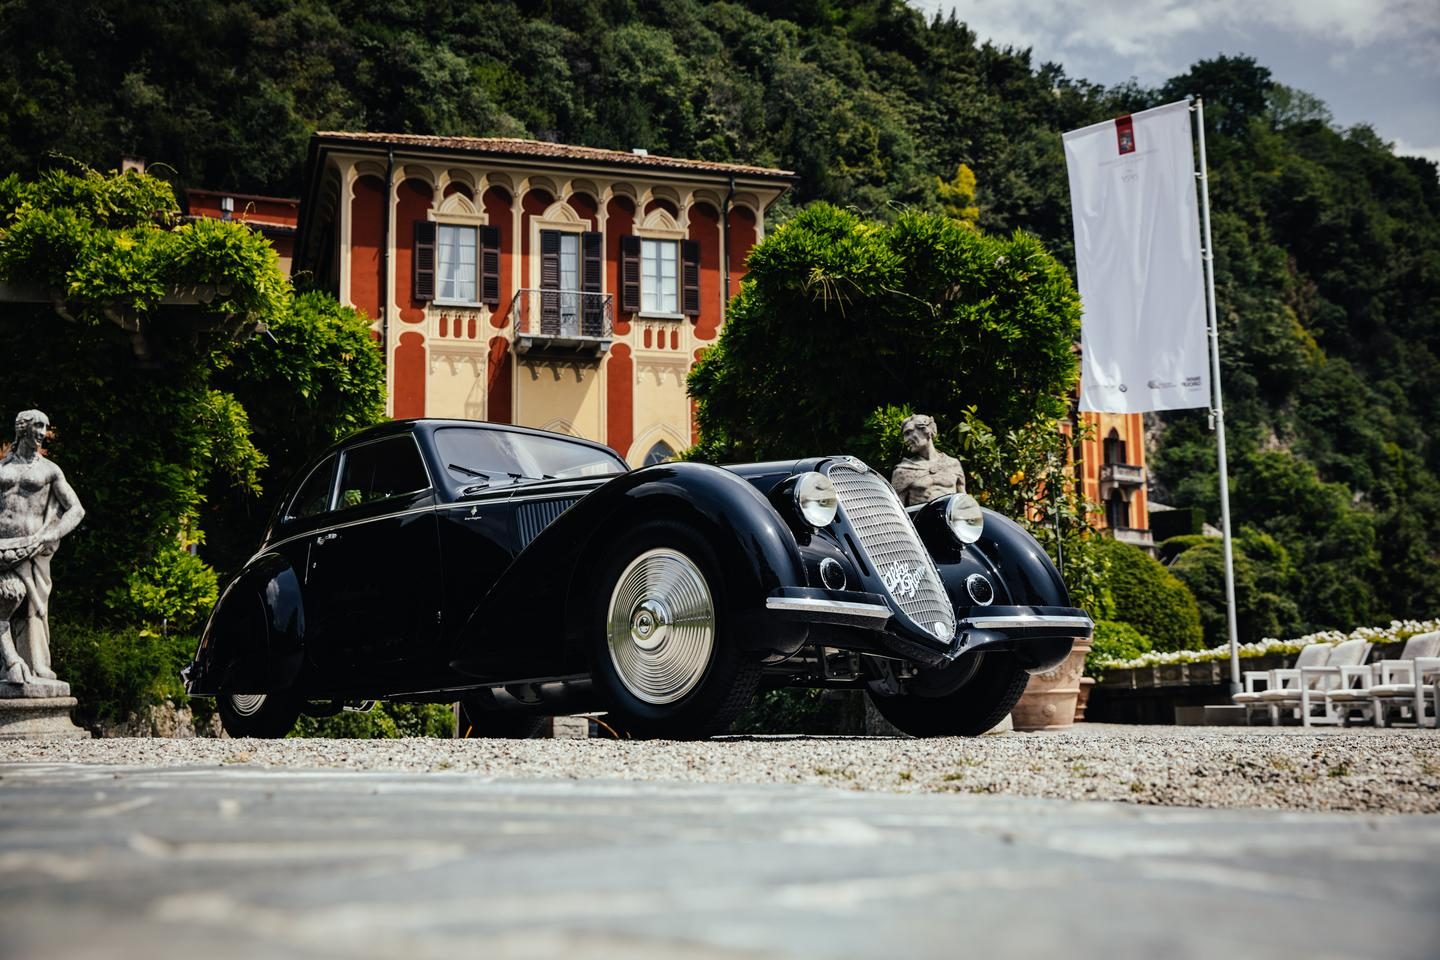 This 1937 Alfa Romeo 8C 2900B Touring Berlinetta owned by David and Ginny Sydorick: In taking out the most prestigious concours events in both America and Europe, plus the Peninsula Classics Best of the Best award in Paris in February (2019), the car has achieved the equivalent of a Tennis Grand Slam